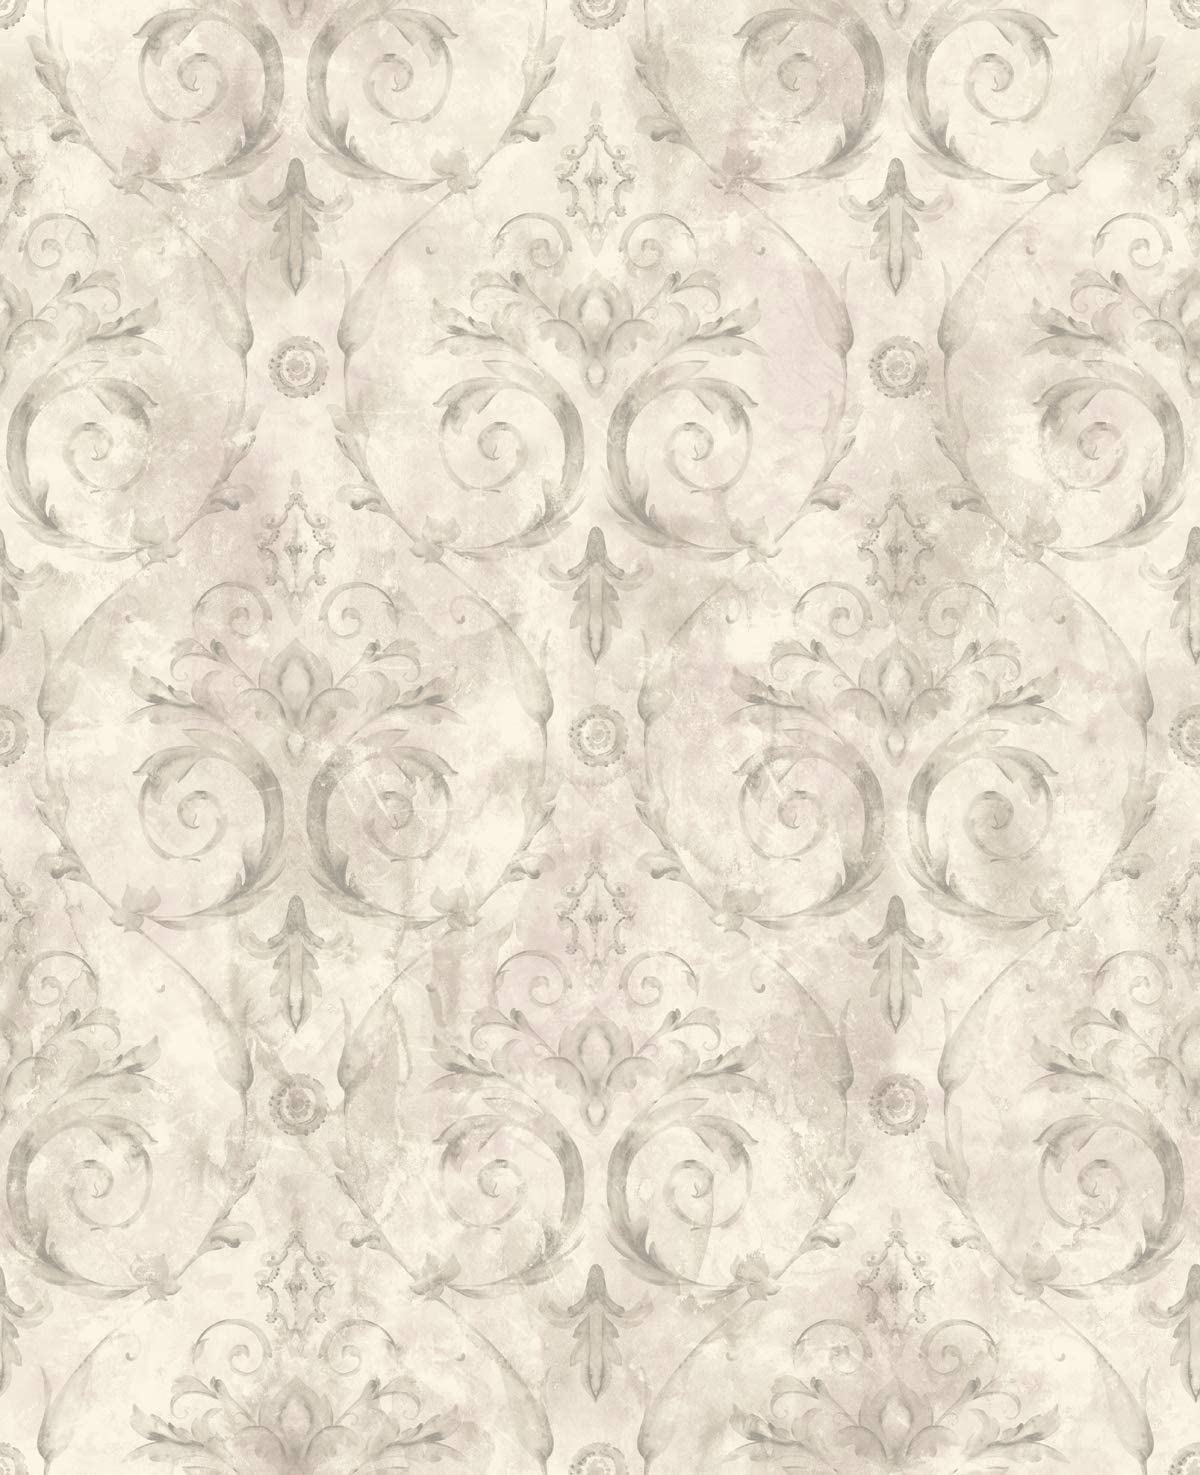 Floral Damask Wallpaper Purple Lilac Silver Vintage Victorian